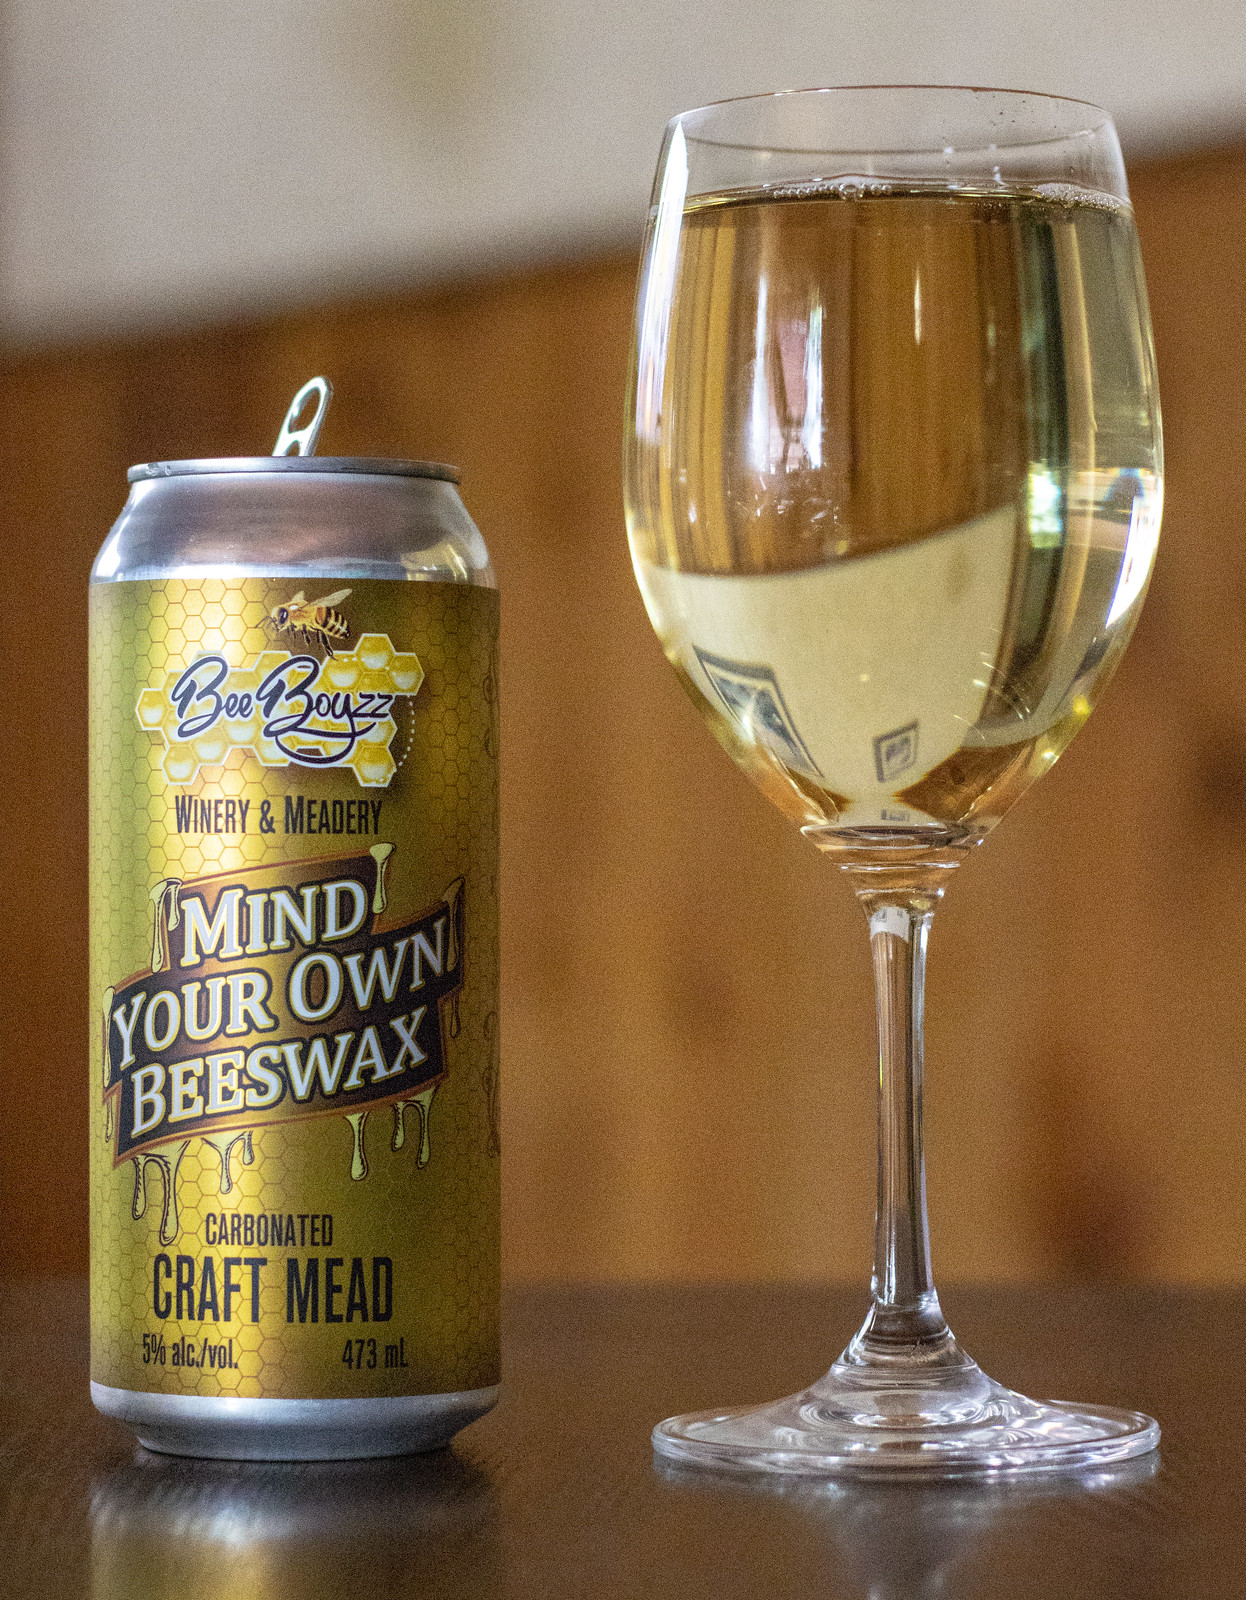 Bee Boyzz Mind Your Own Beeswax Carbonated Craft Mead